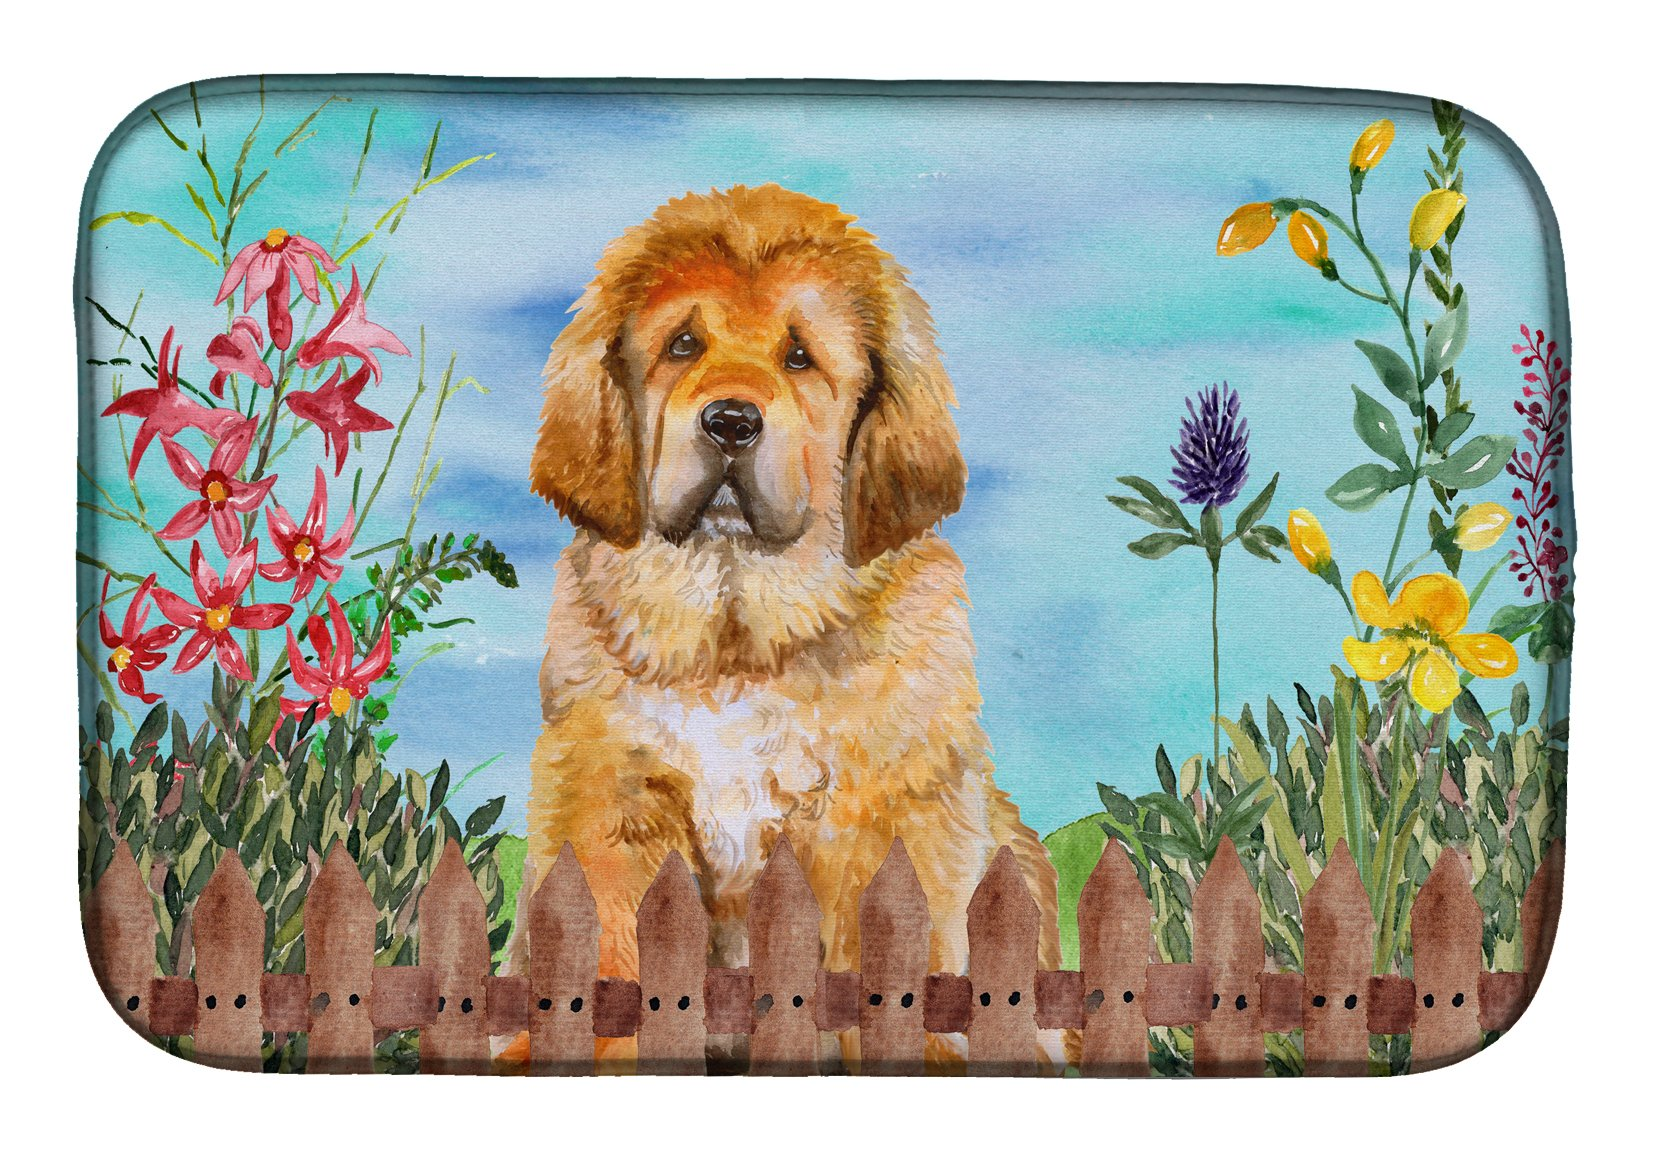 Tibetan Mastiff Spring Dish Drying Mat CK1283DDM by Caroline's Treasures